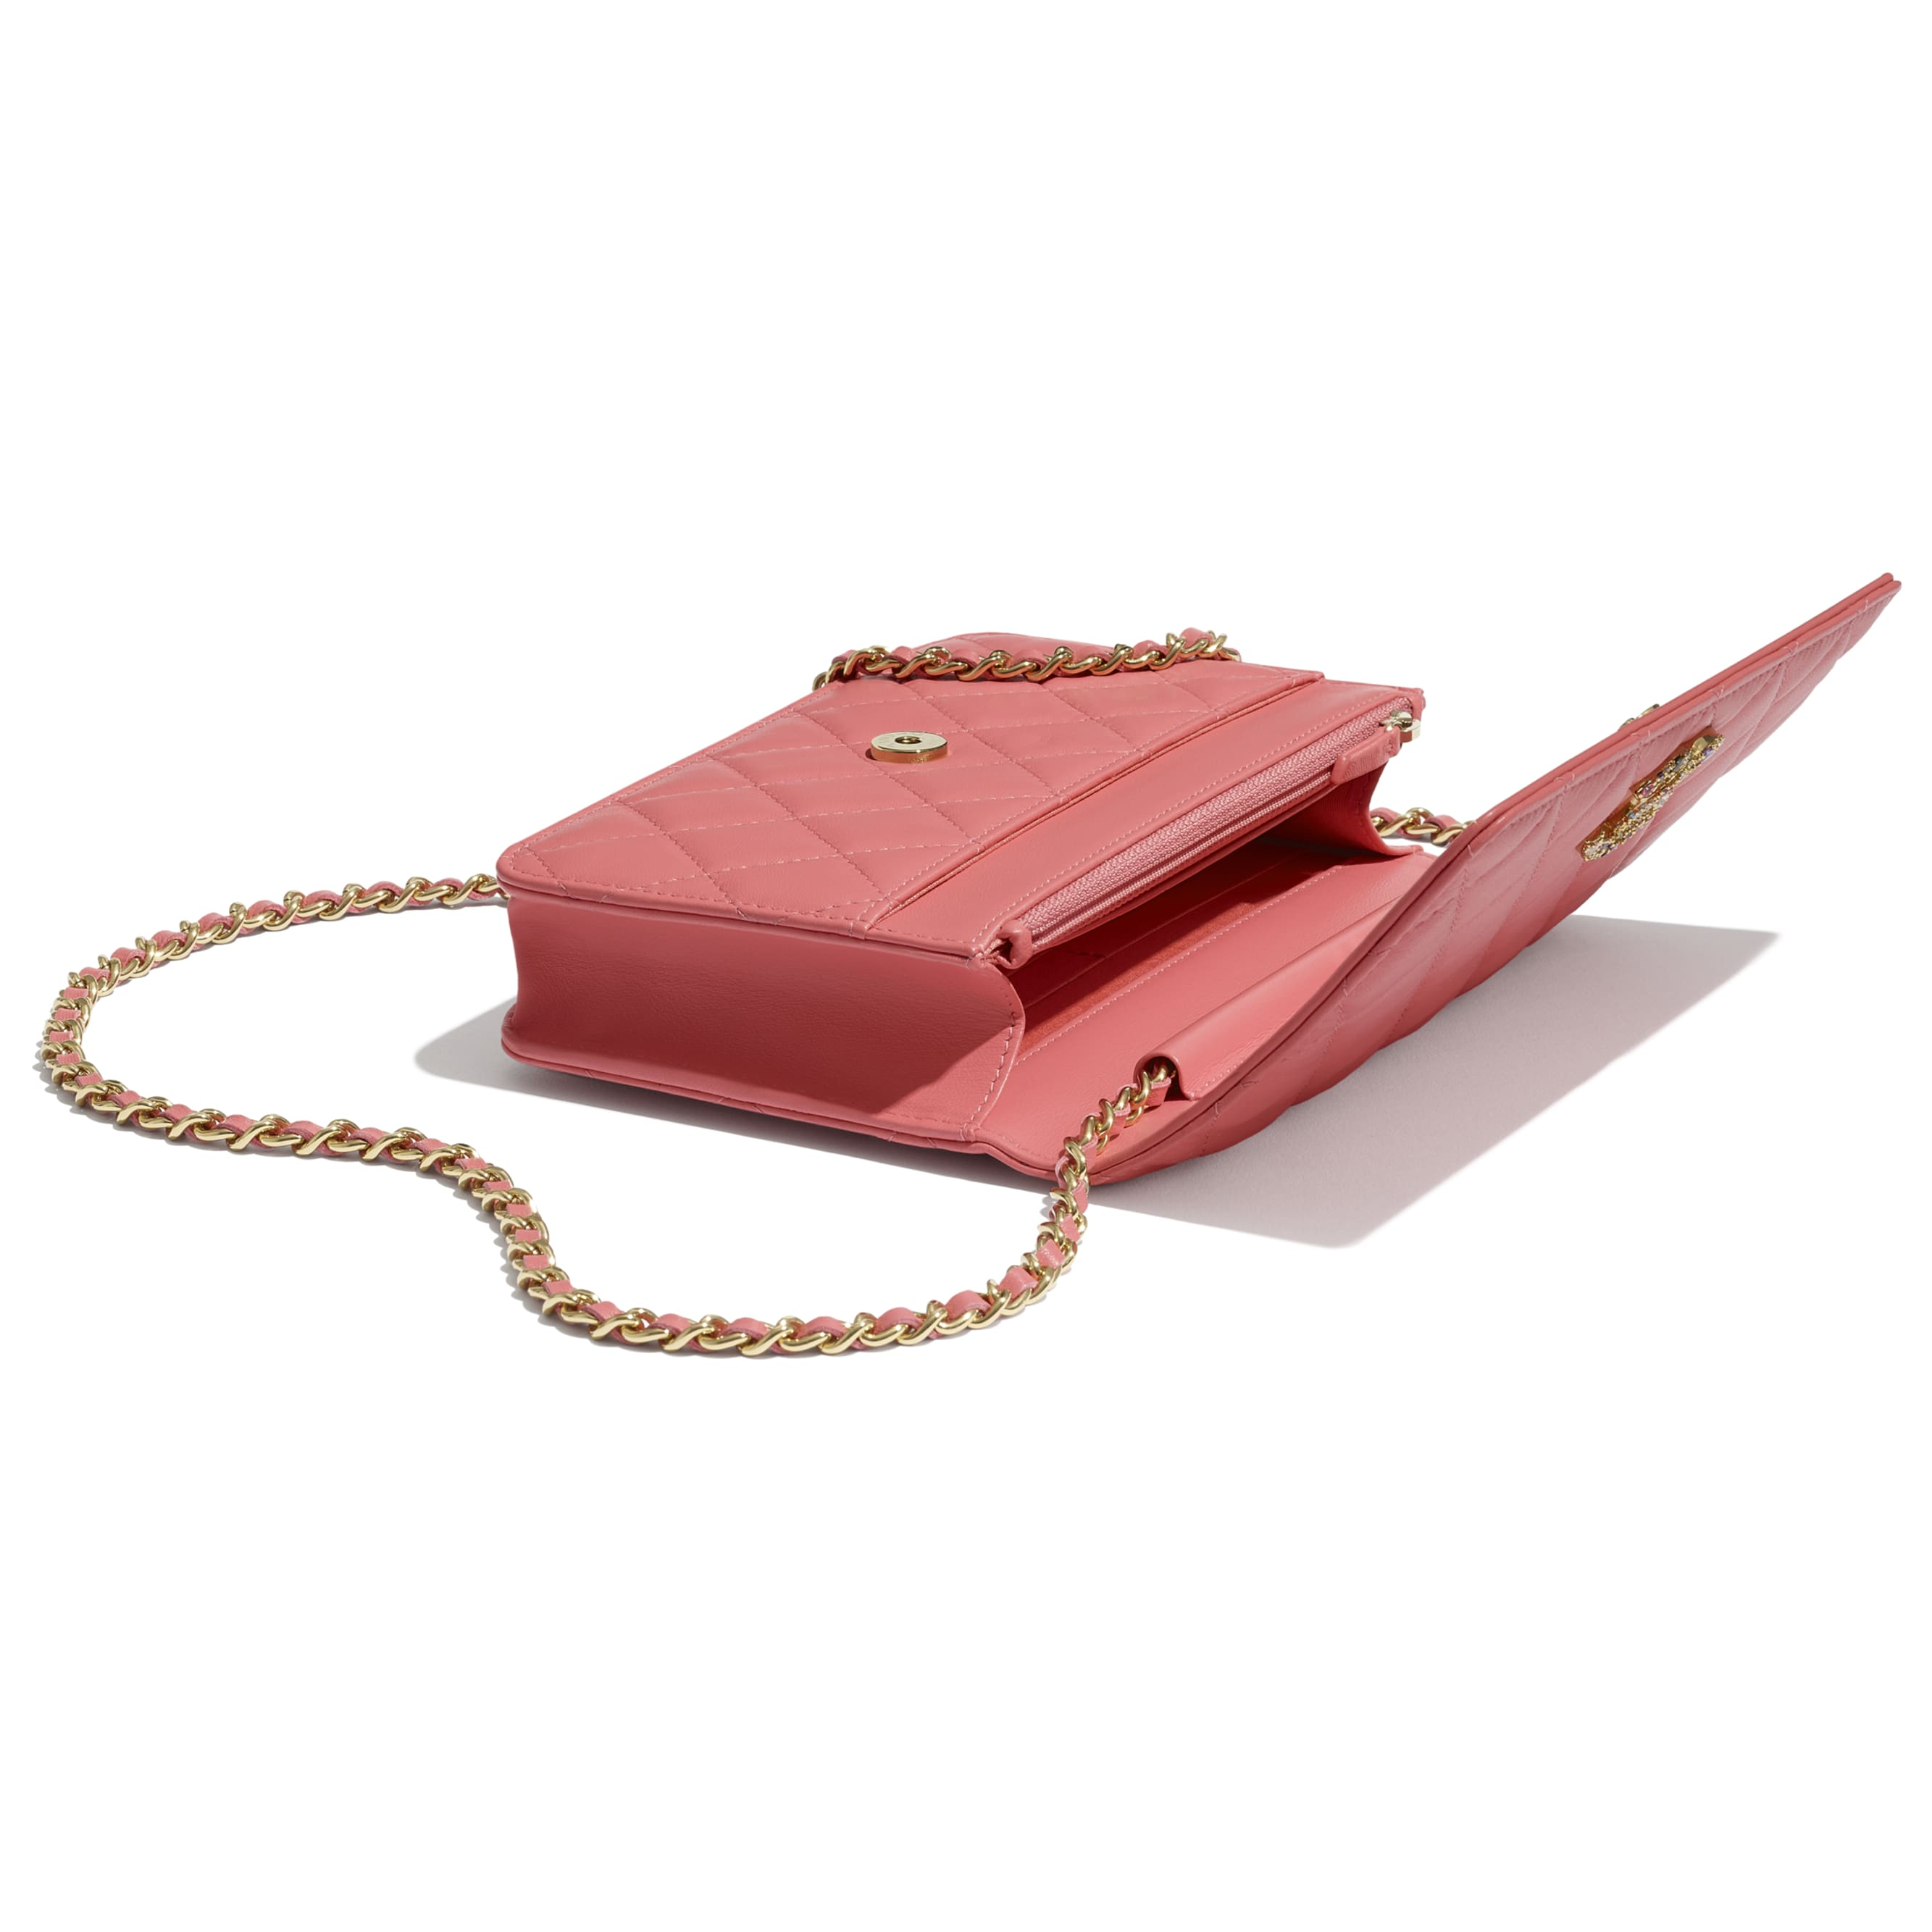 Wallet On Chain - Coral - Lambskin, Zirconium & Gold-Tone Metal - CHANEL - Extra view - see standard sized version